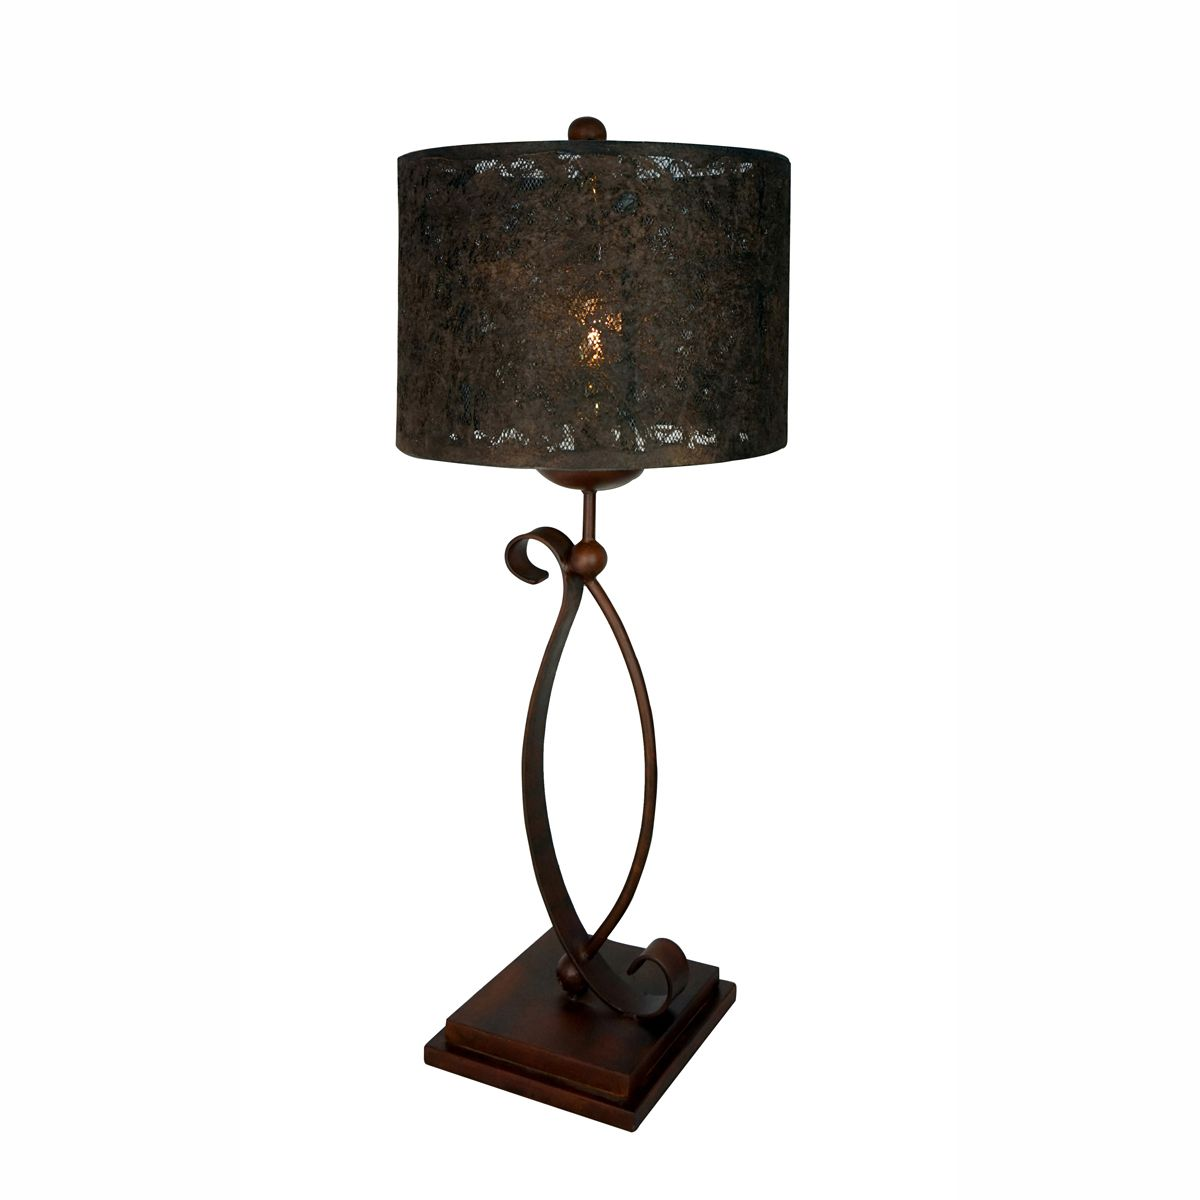 Dubai Table Lamp with Paper and Metal Netting Shade